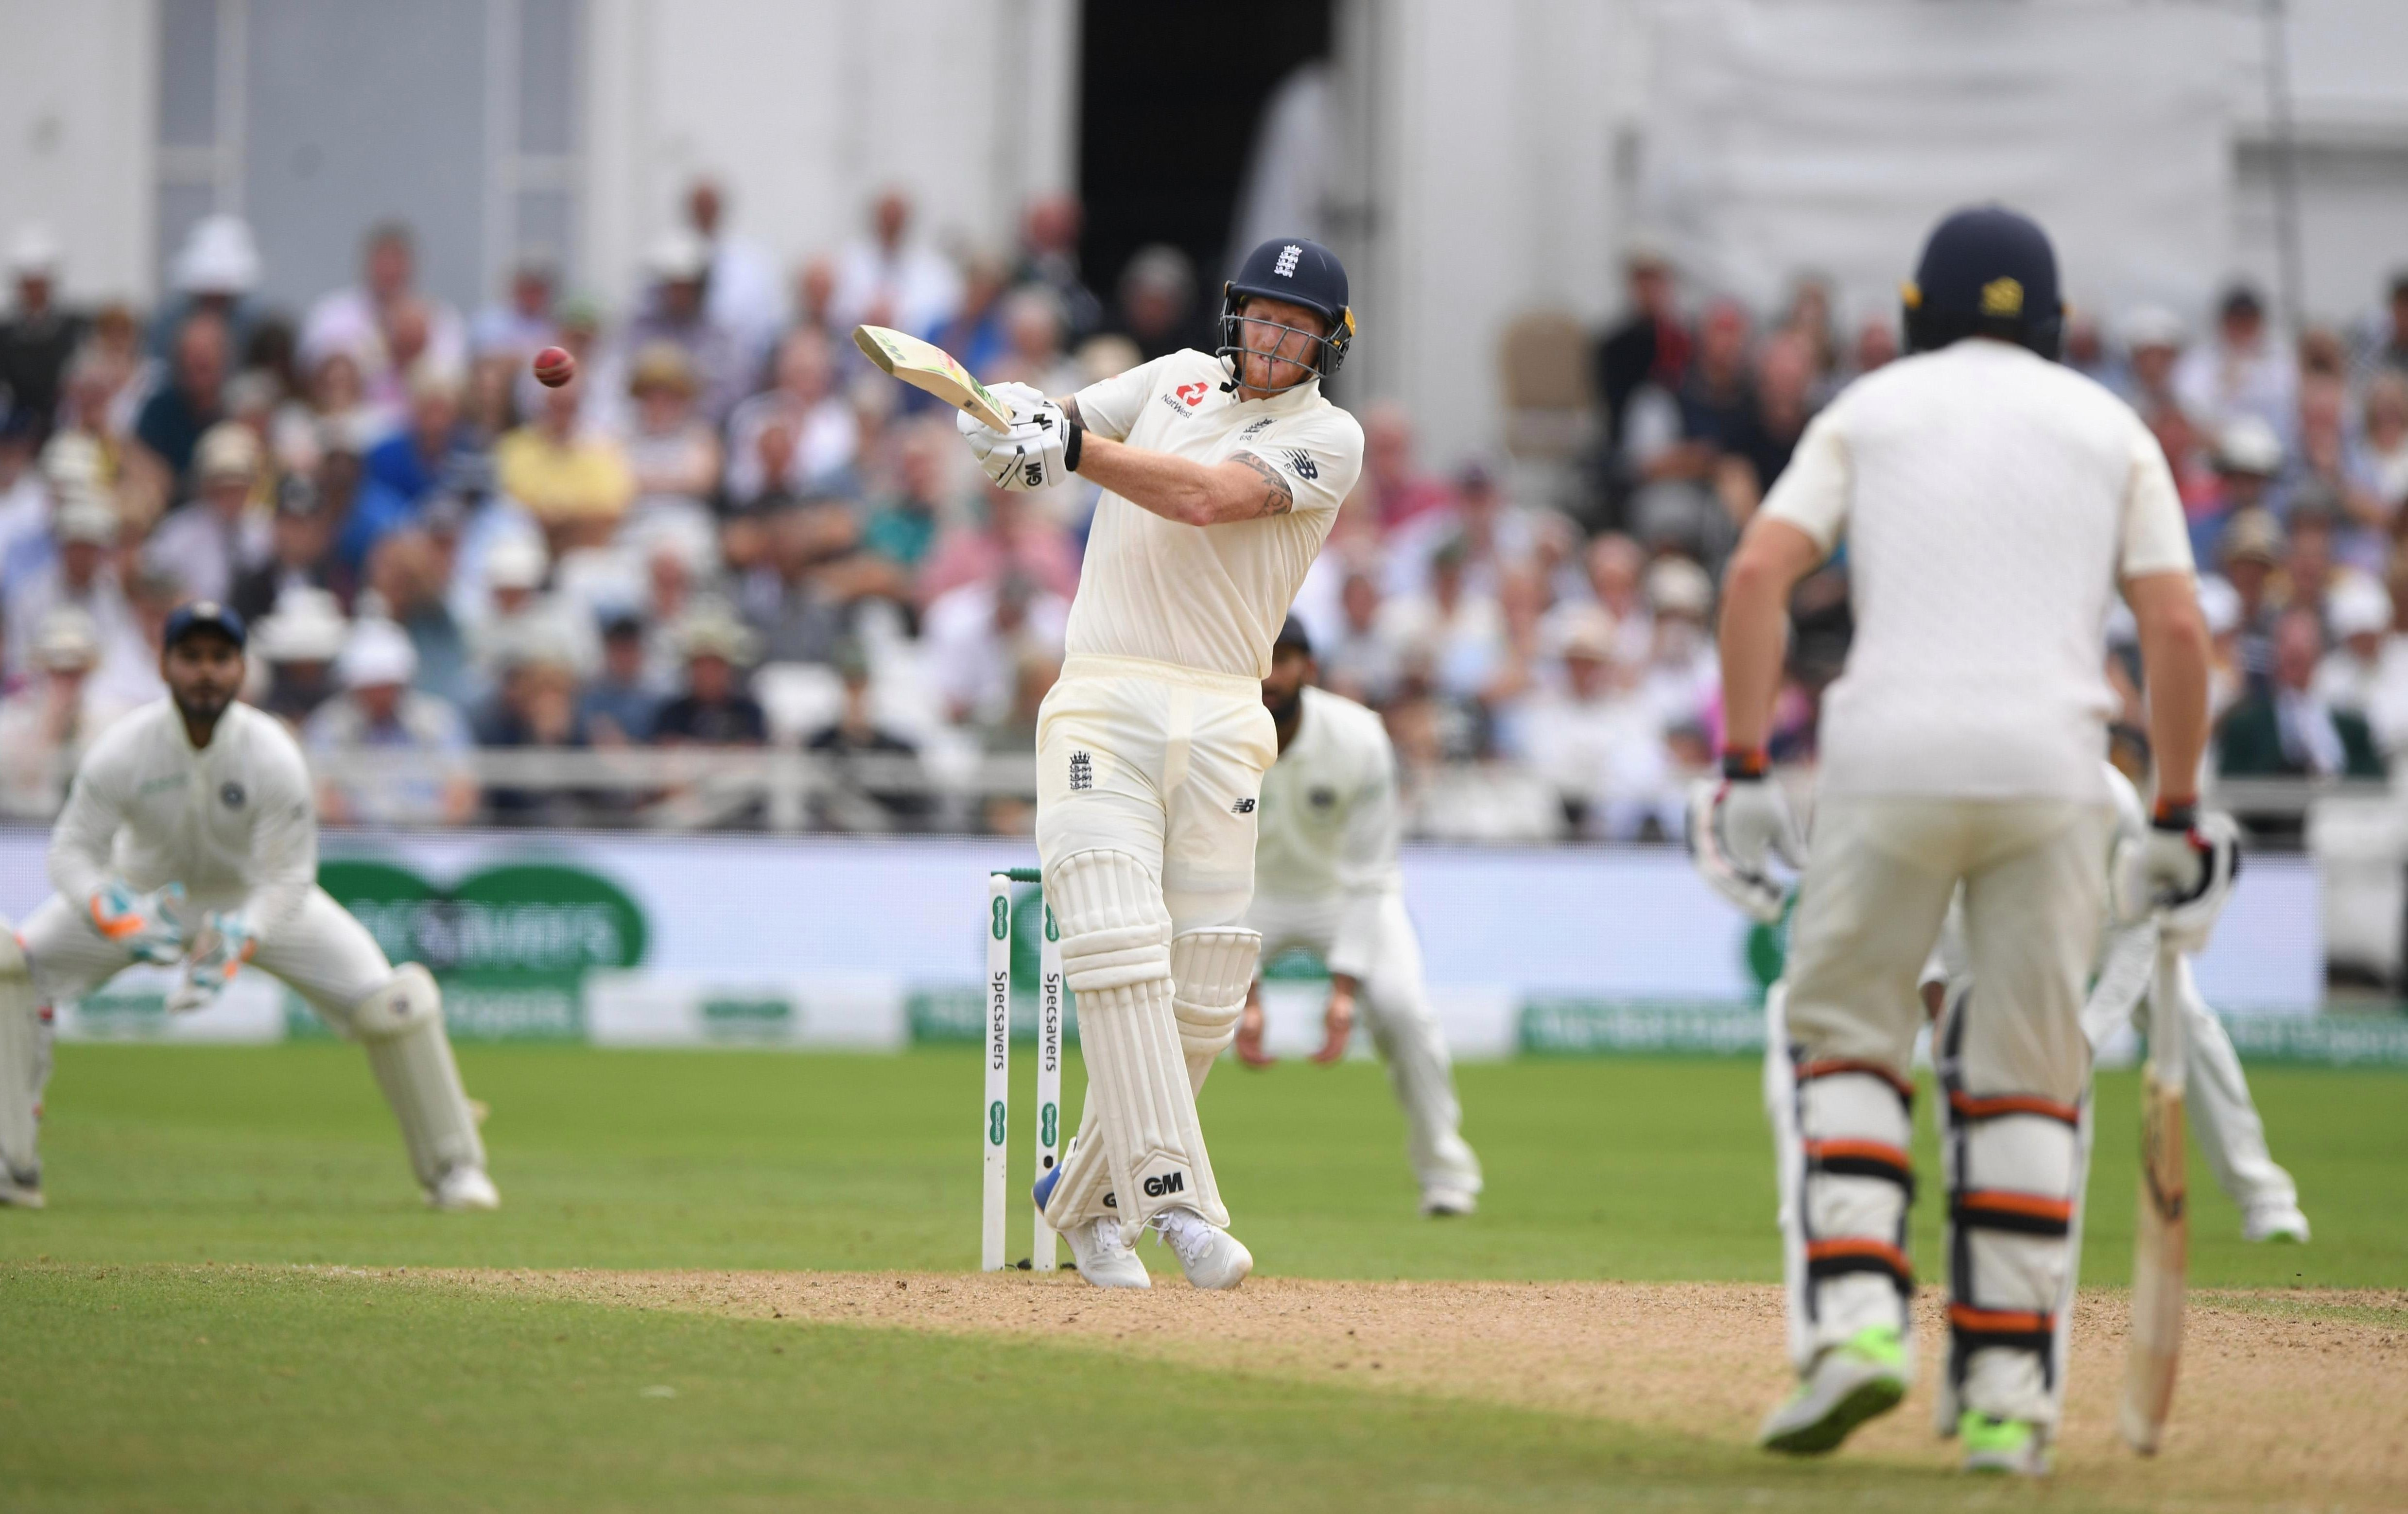 Ben Stokes reached double figures after being promoted to No5 as history was made